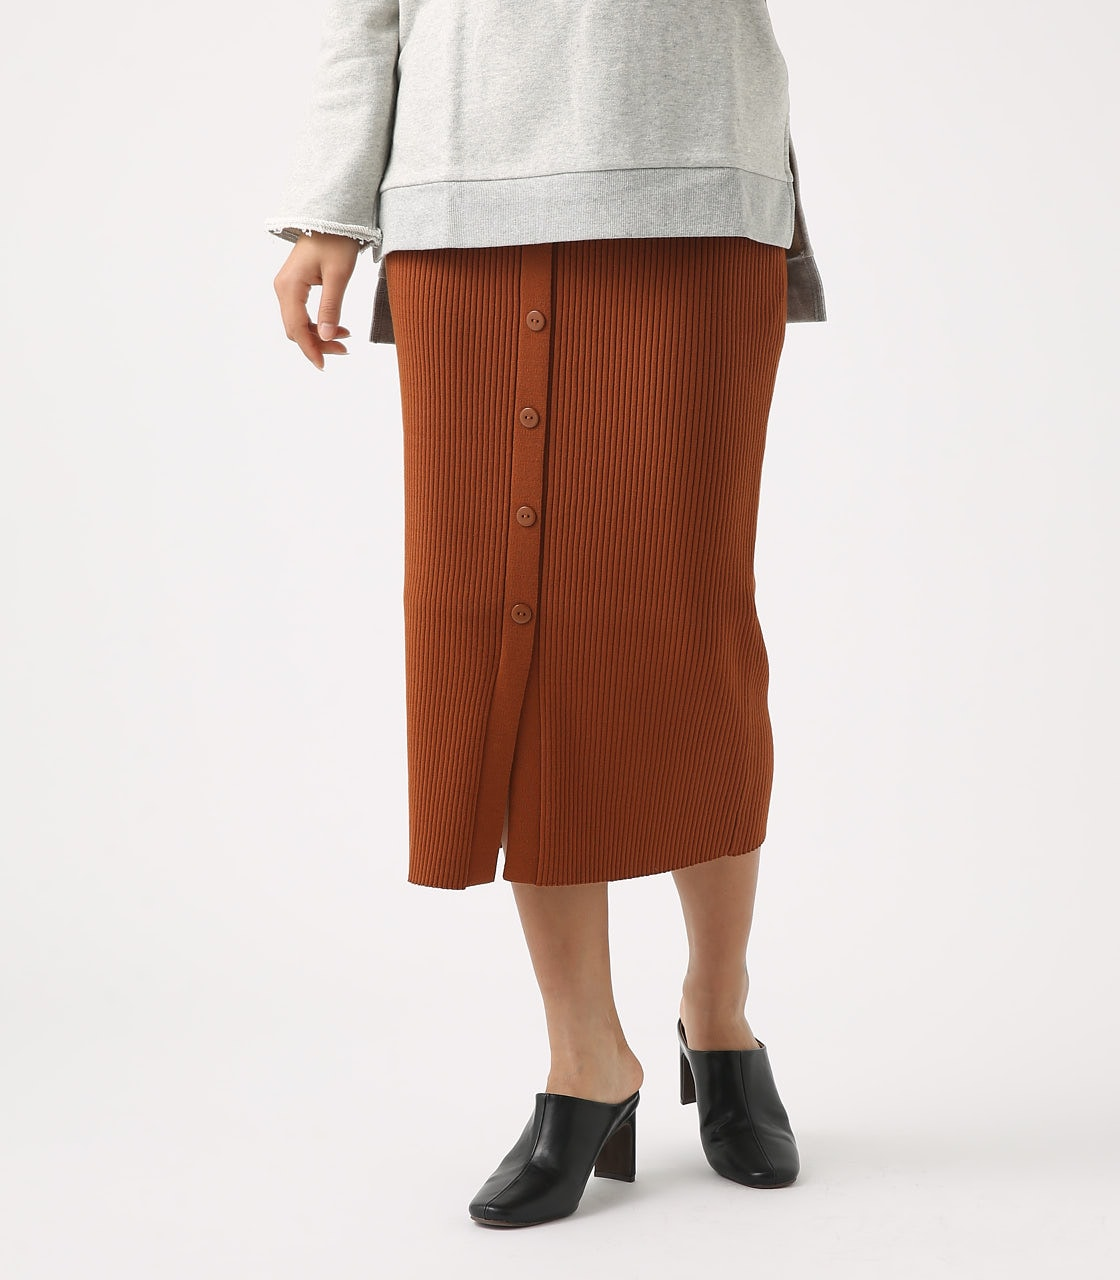 BUTTON RIB KNIT SKIRT 詳細画像 BRN 2